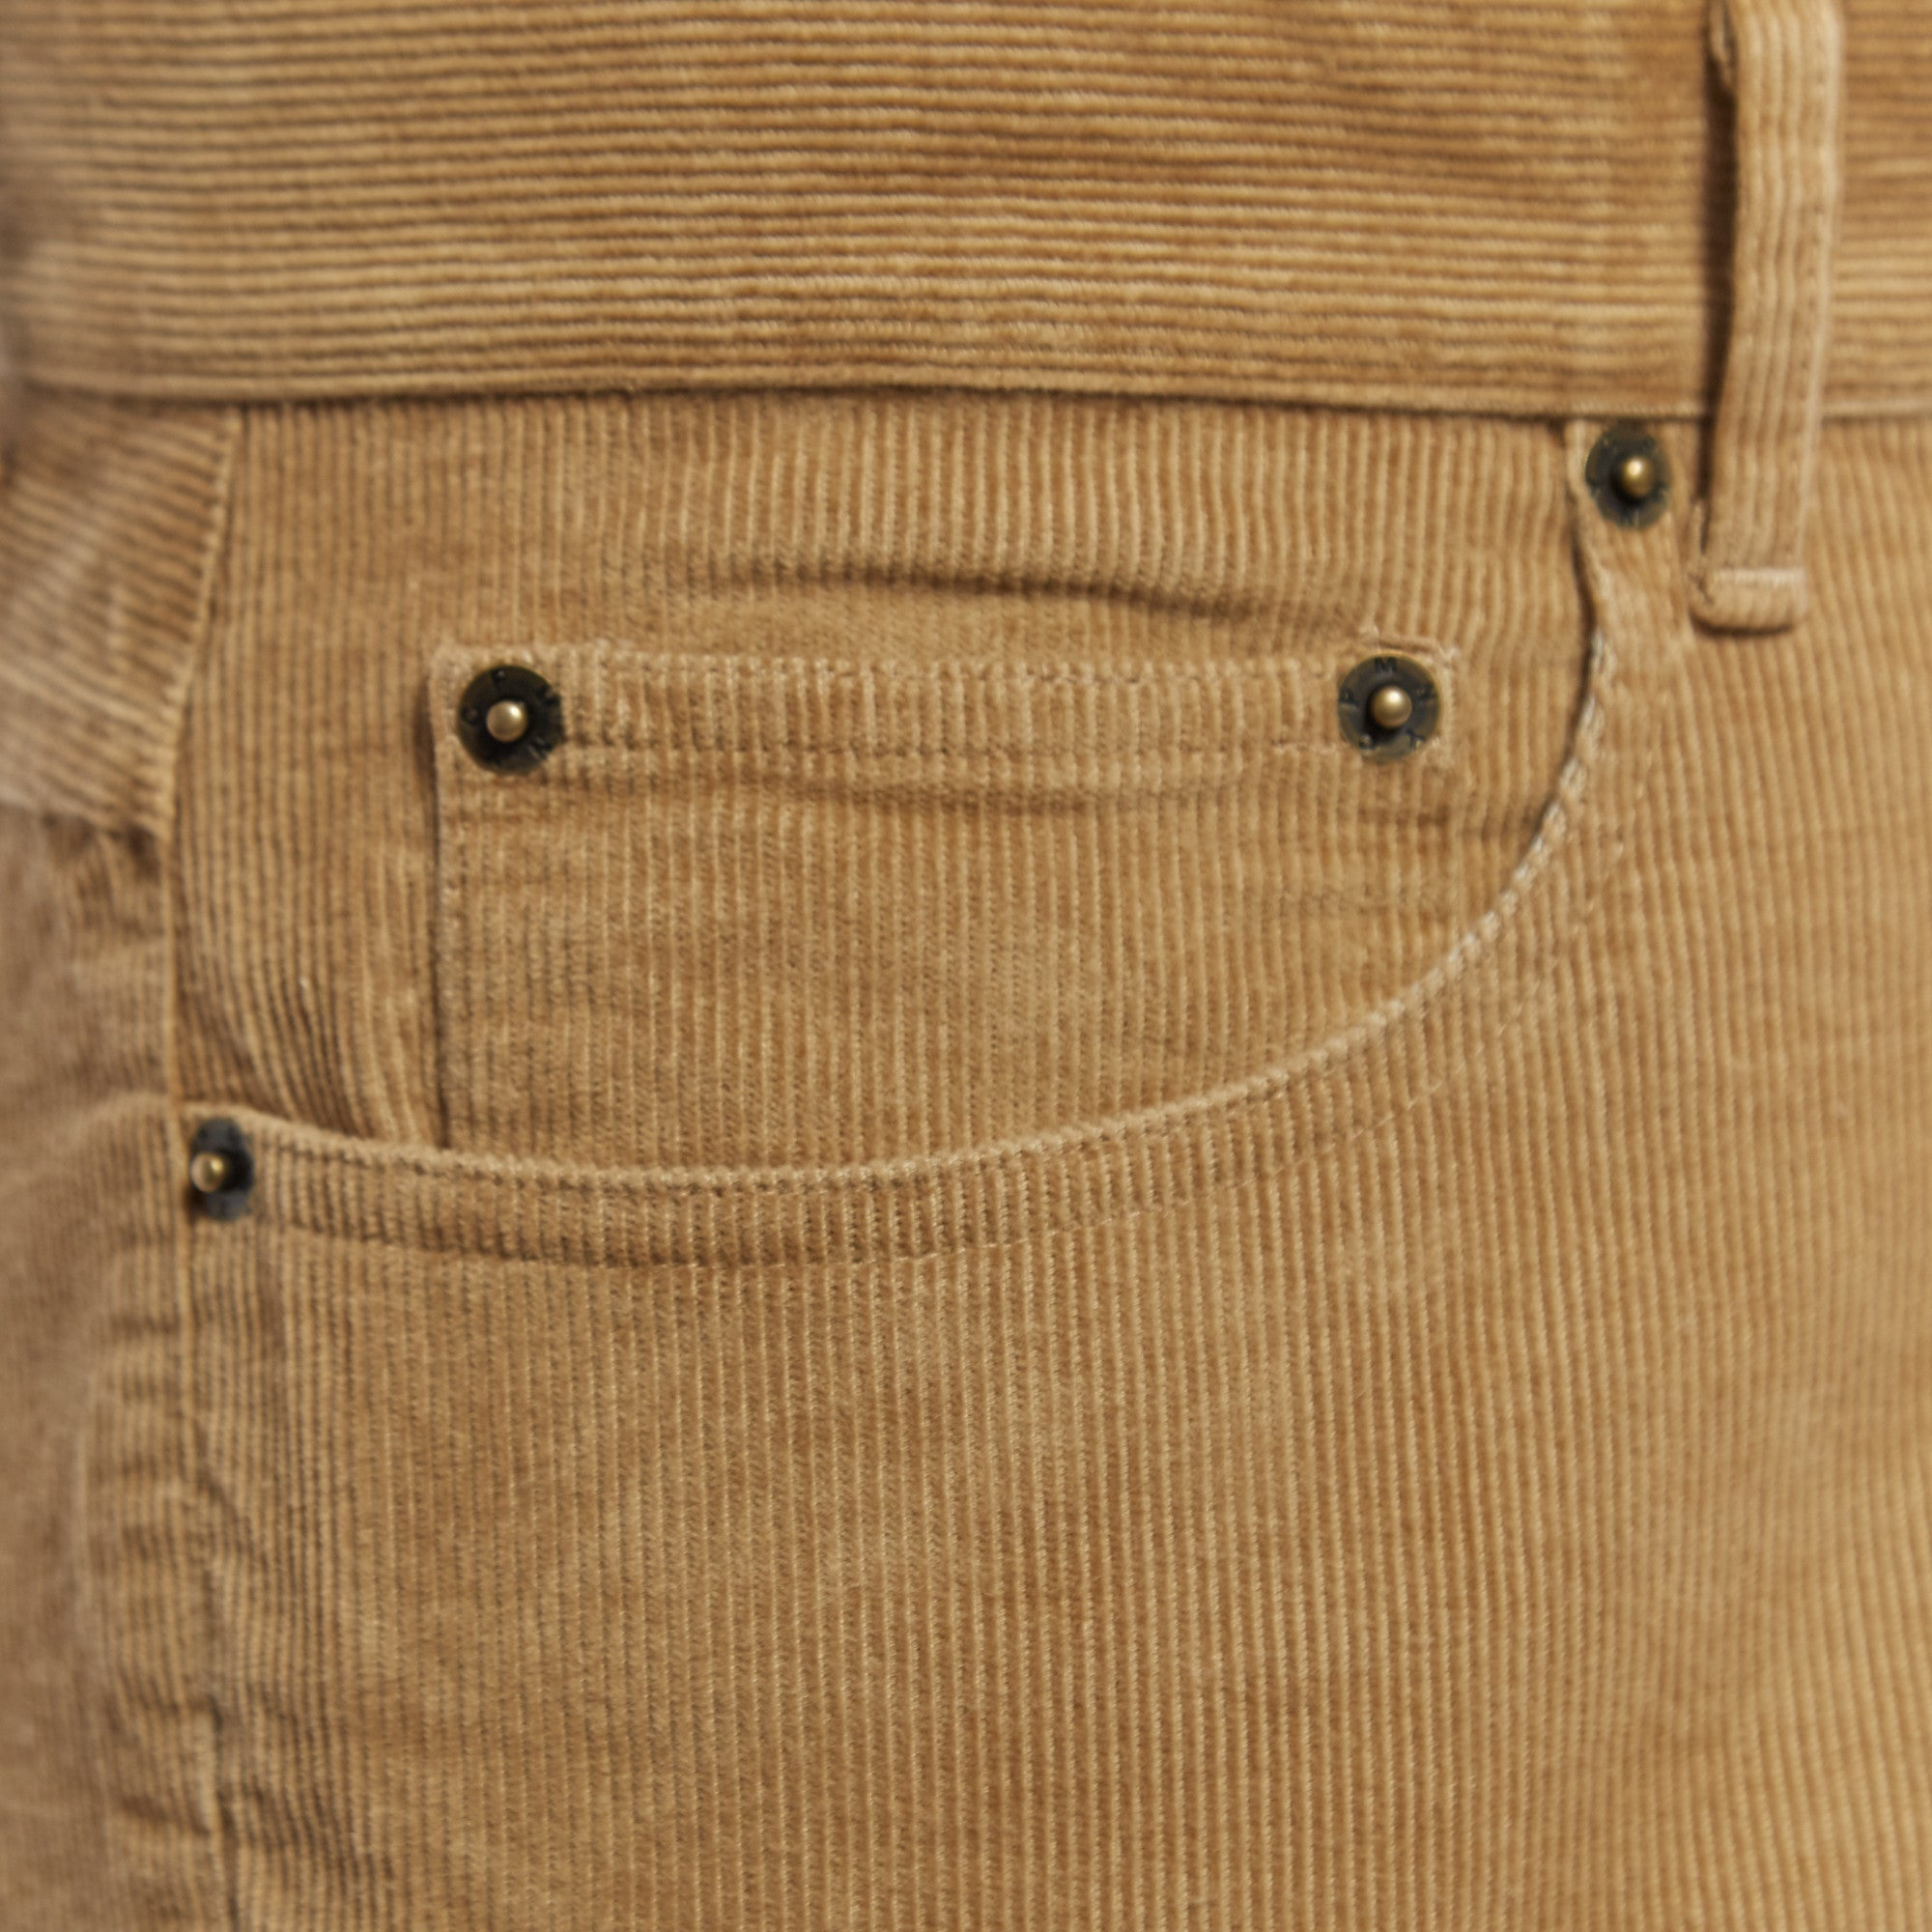 Kittredge Cords - Tan